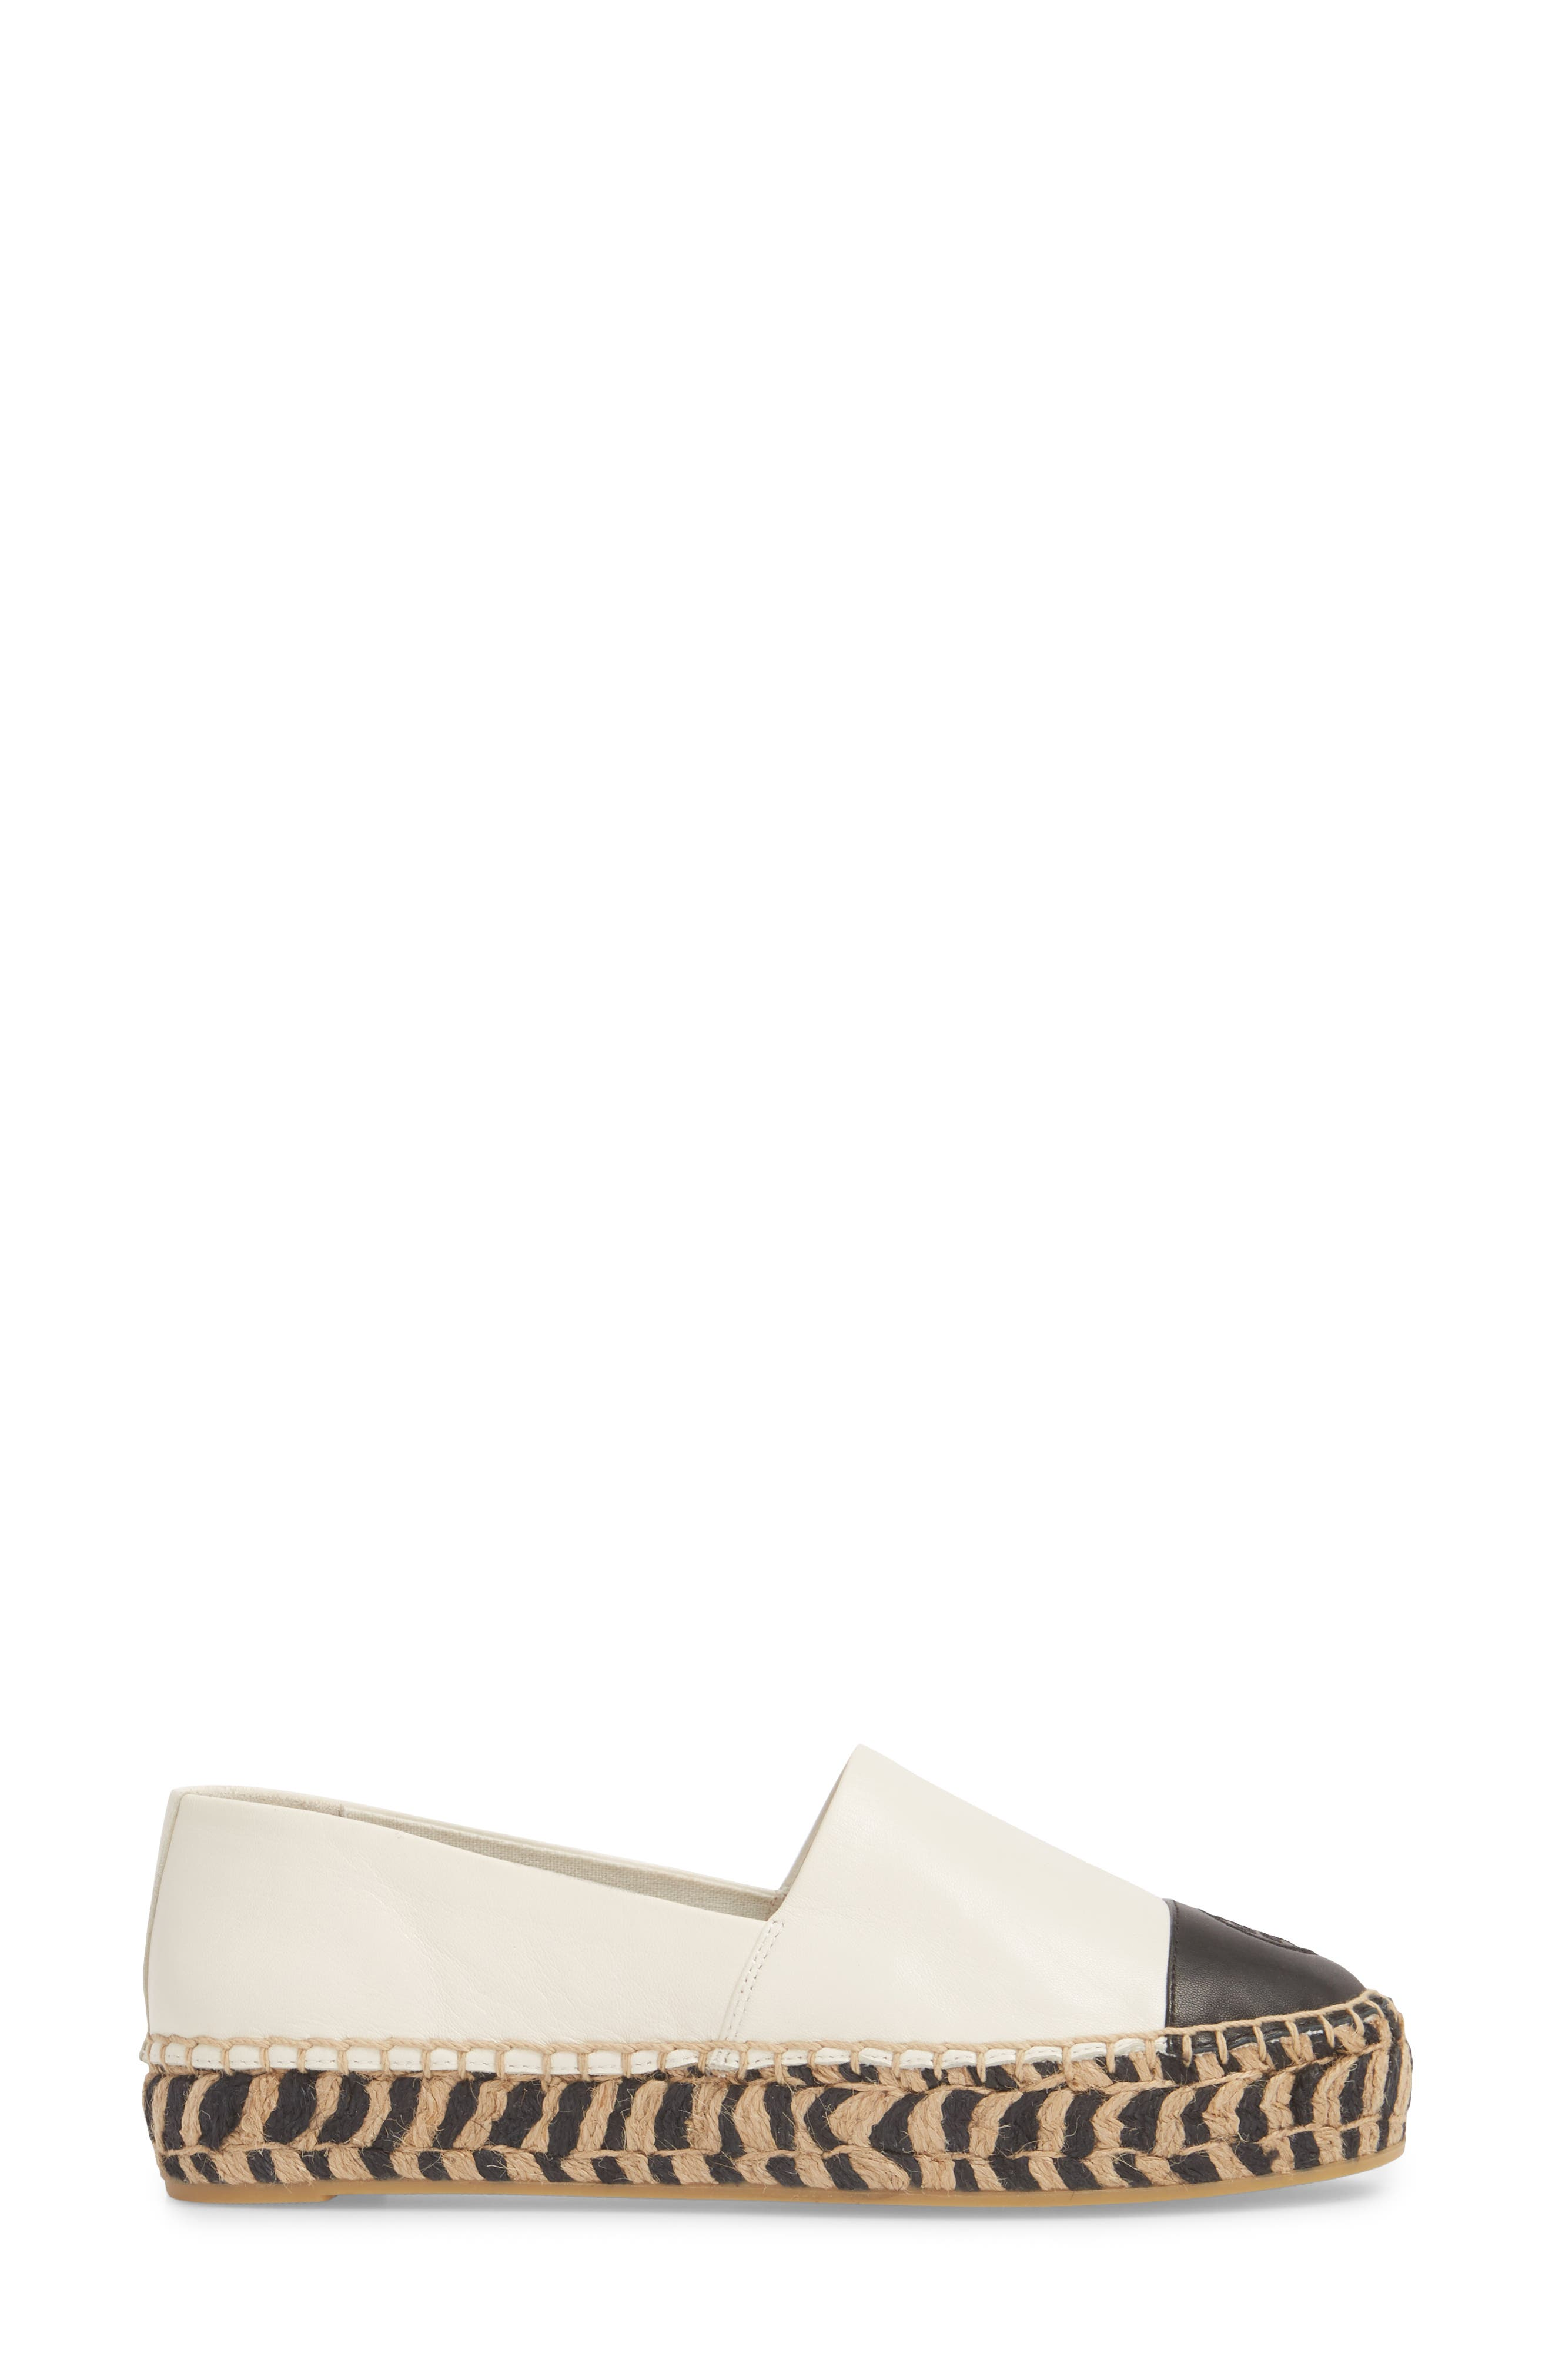 TORY BURCH, Colorblock Platform Espadrille, Alternate thumbnail 3, color, PERFECT IVORY/ PERFECT BLACK